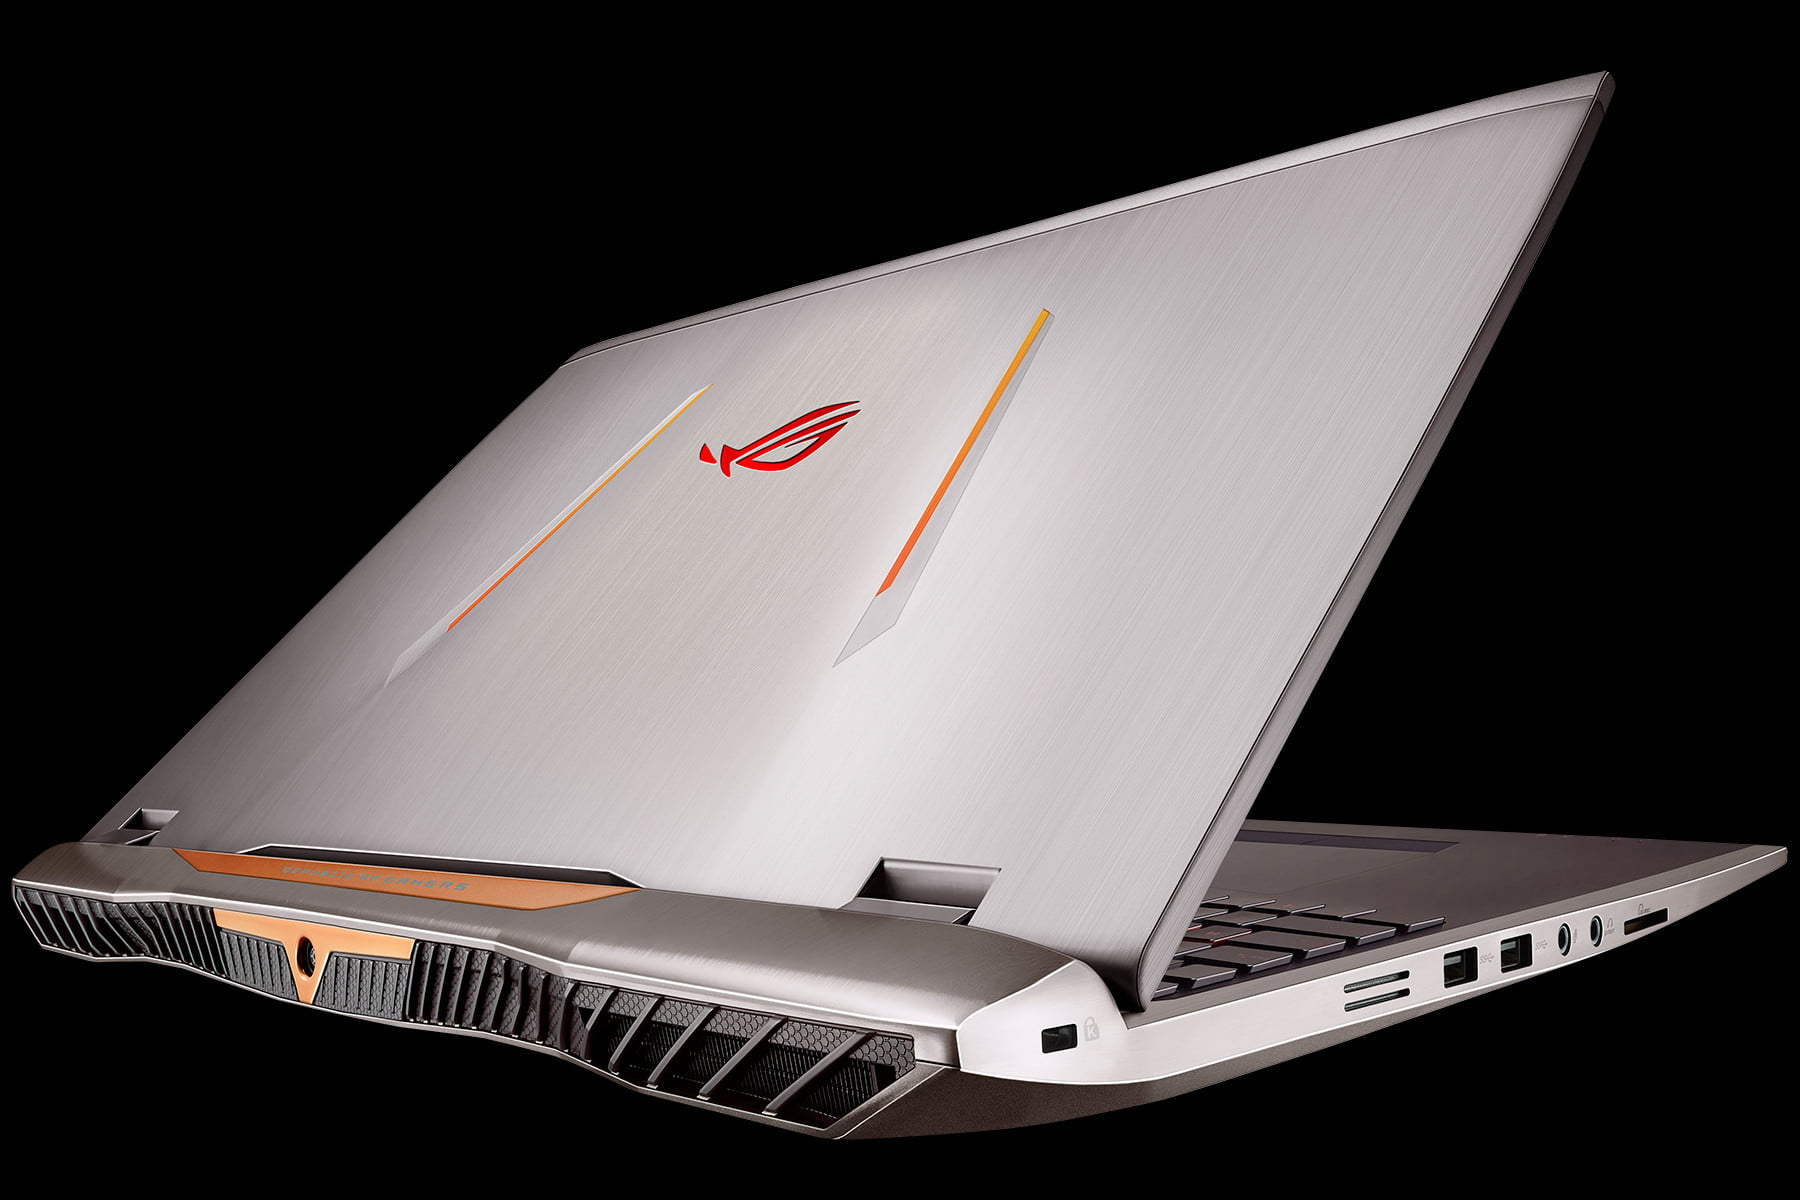 Best New Gaming Laptop 2016 - Asus ROG G701VO